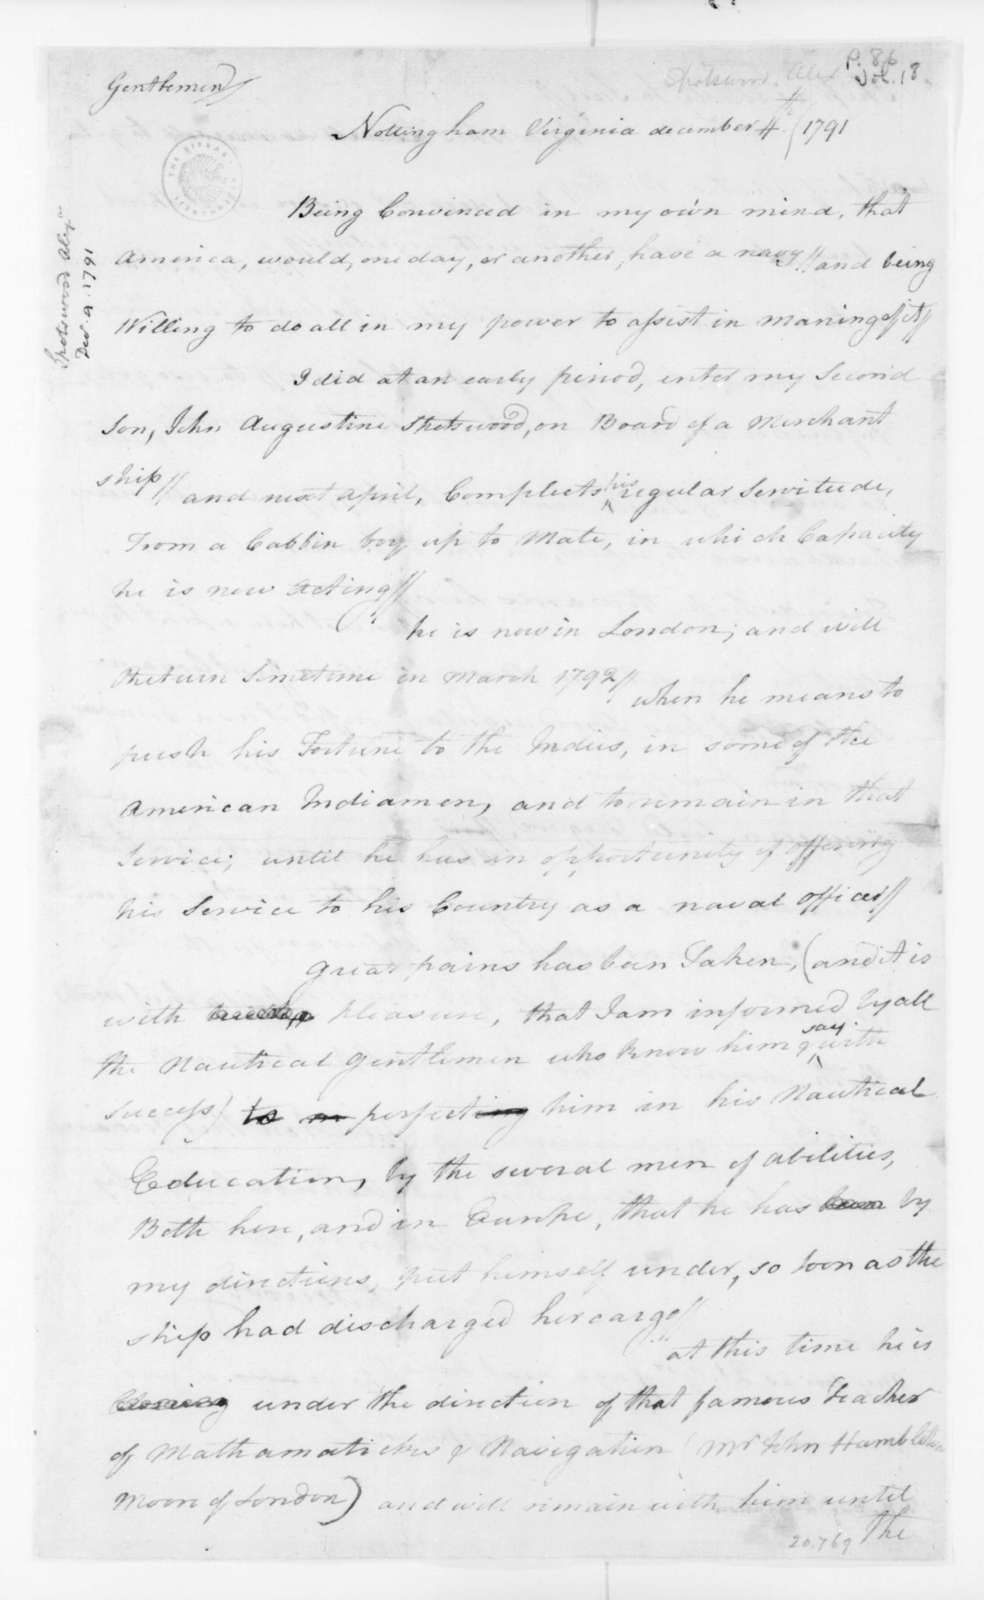 Alexander Spotswood to Virginia Congressional Delegation, December 4, 1791.